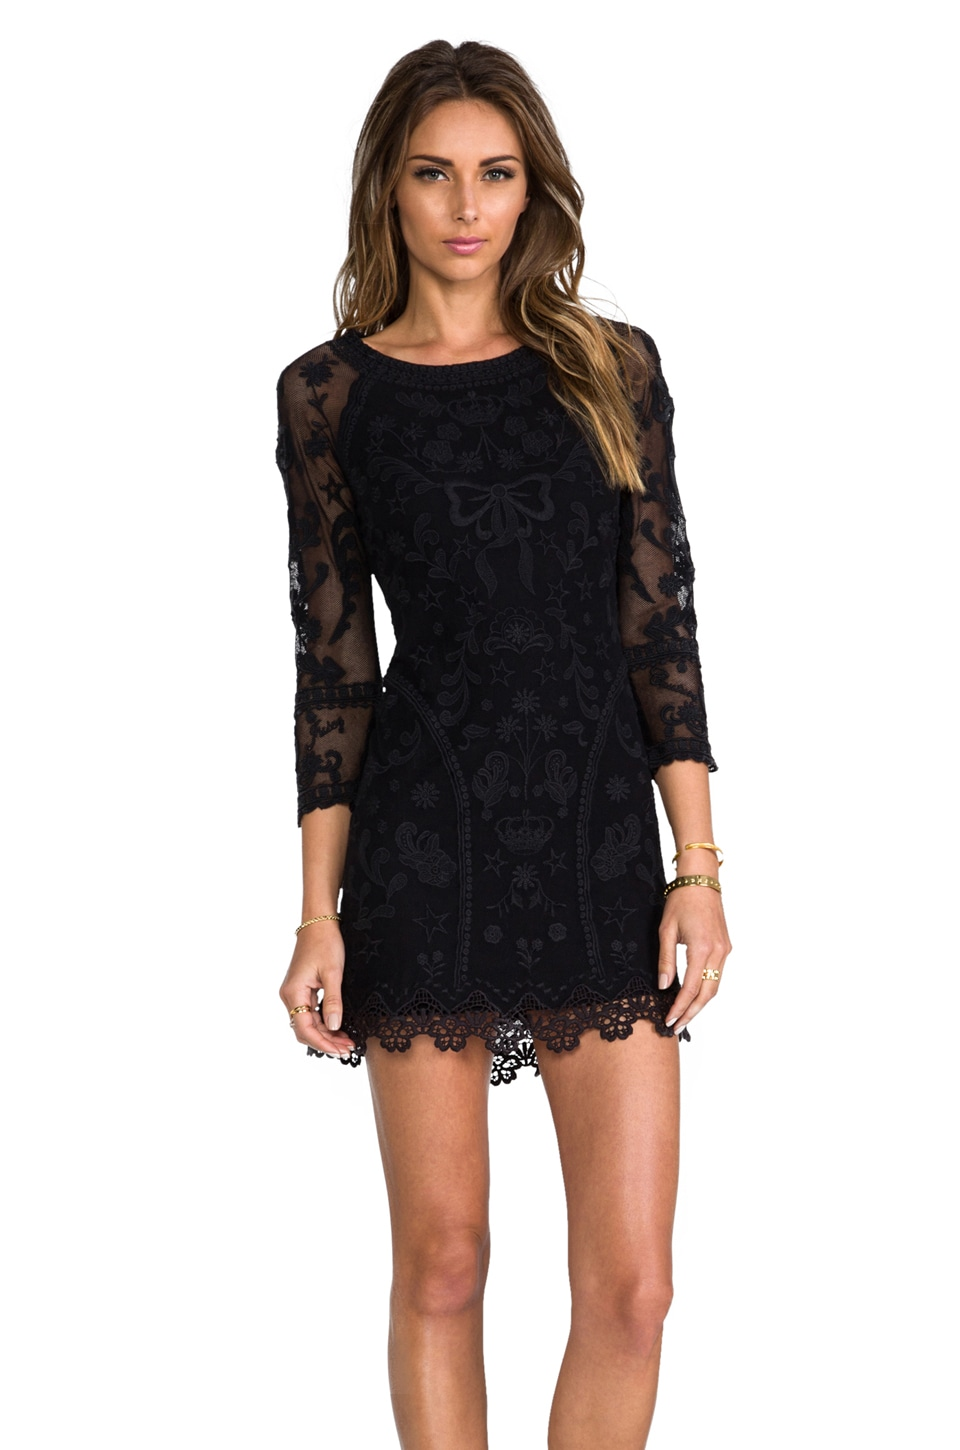 Juicy Couture Lace Dress in Black